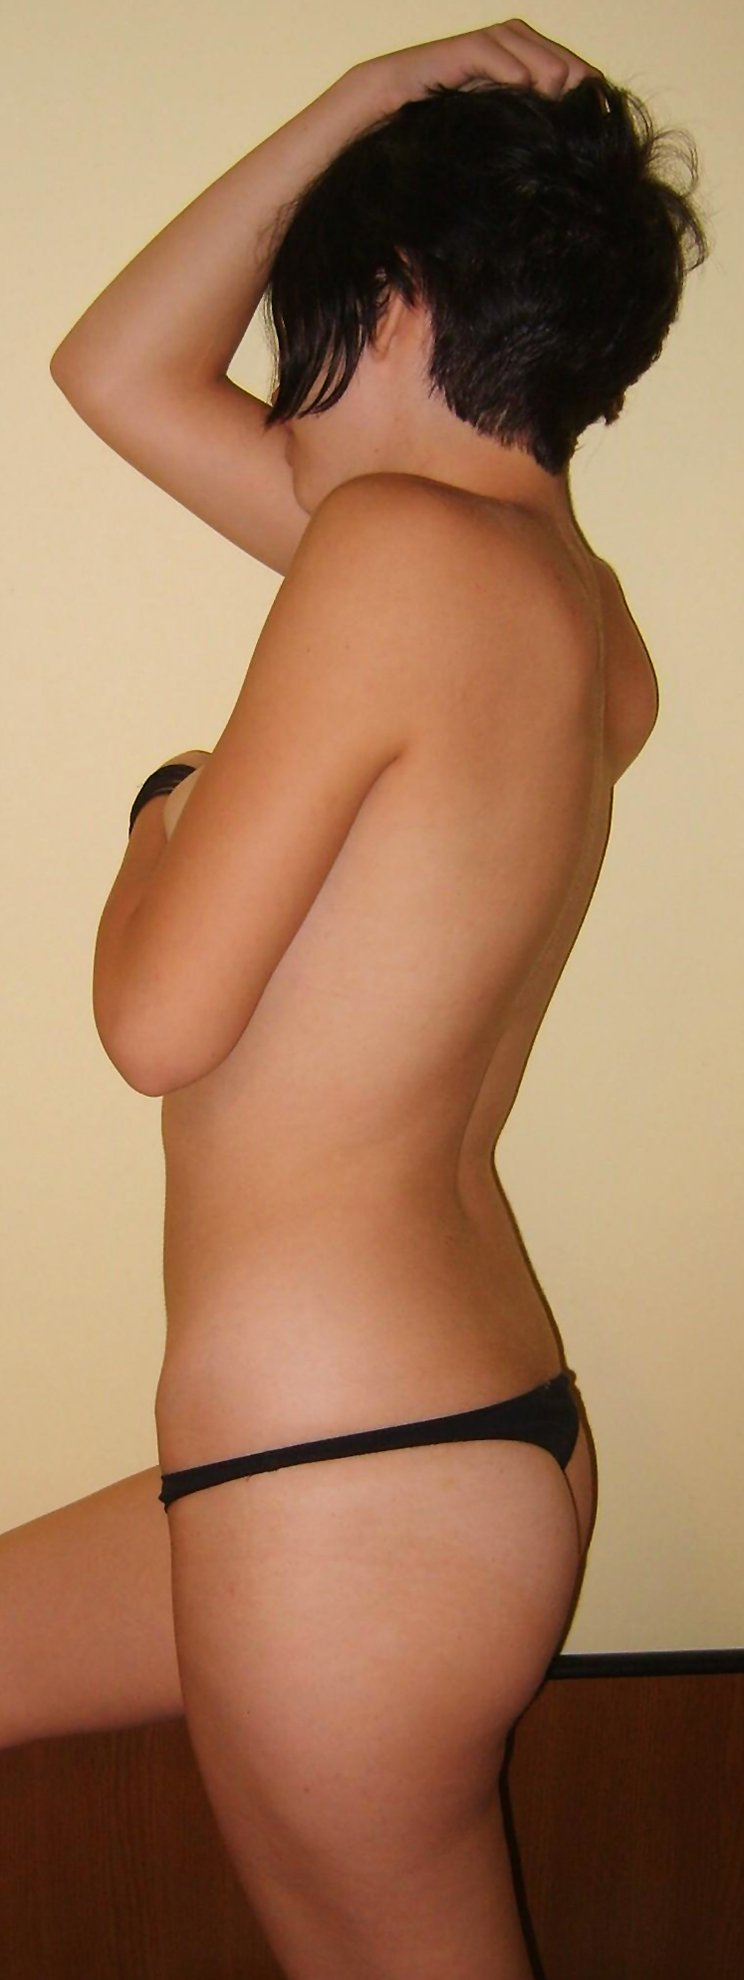 Amateur girlfriend with short hair shows her sexy body